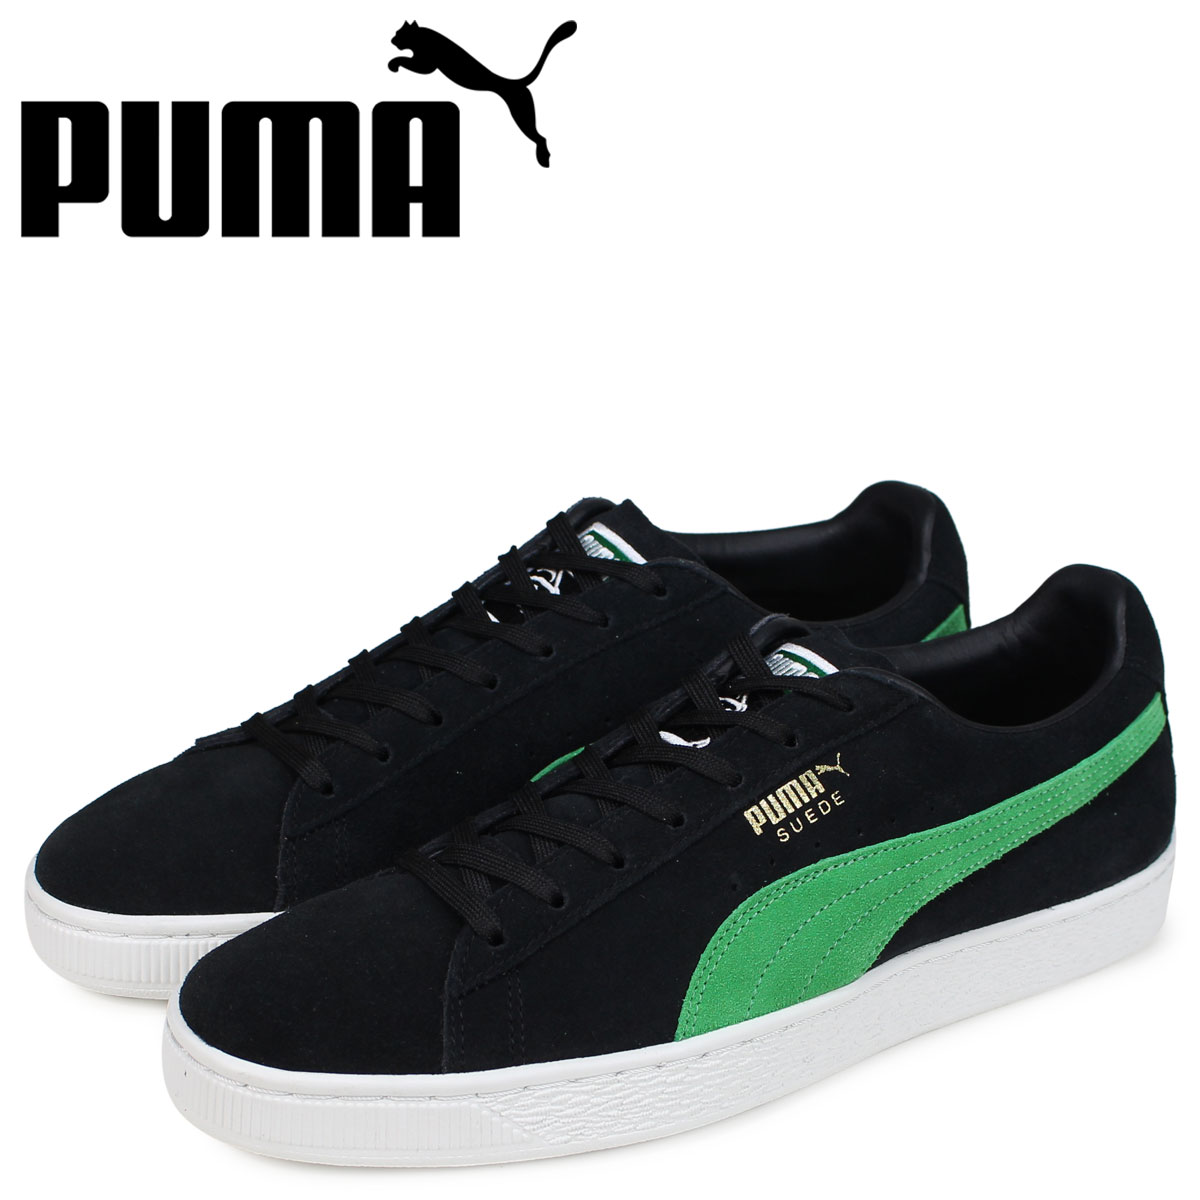 fcd0615d0935 PUMA Puma suede cloth classical music sneakers men extra large  collaboration X-LARGE SUEDE CLASSIC black 366